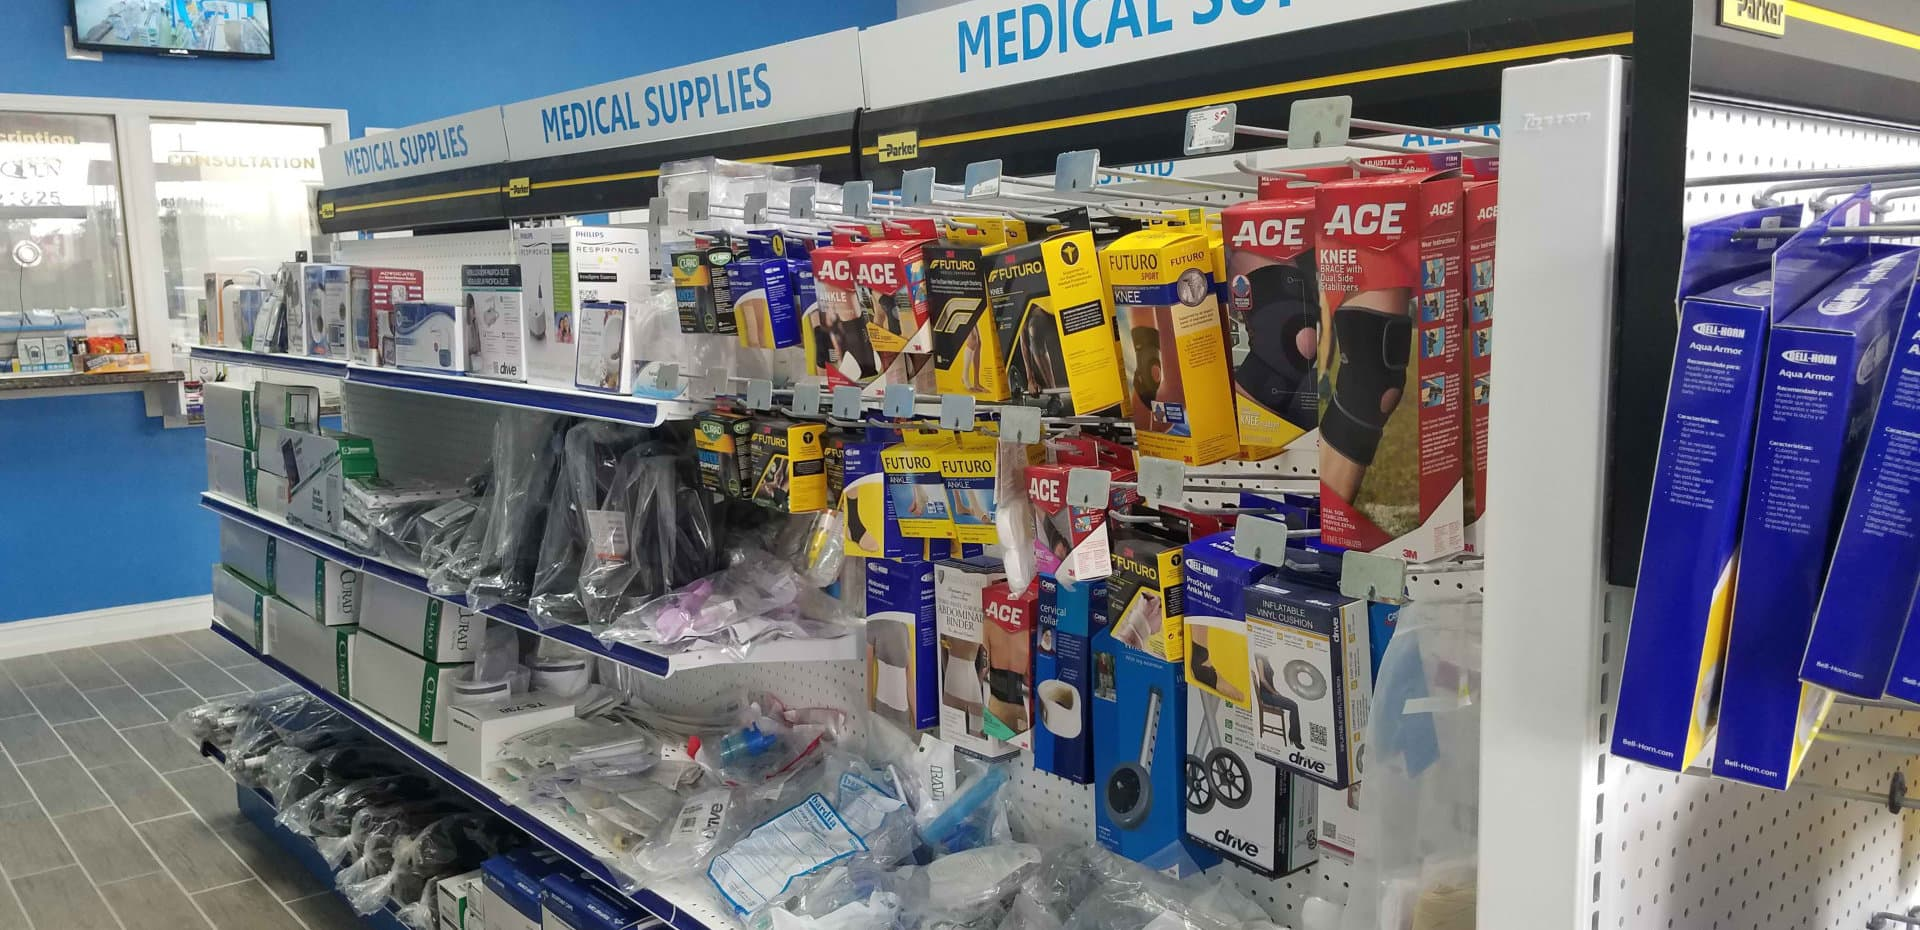 medical supplies in display